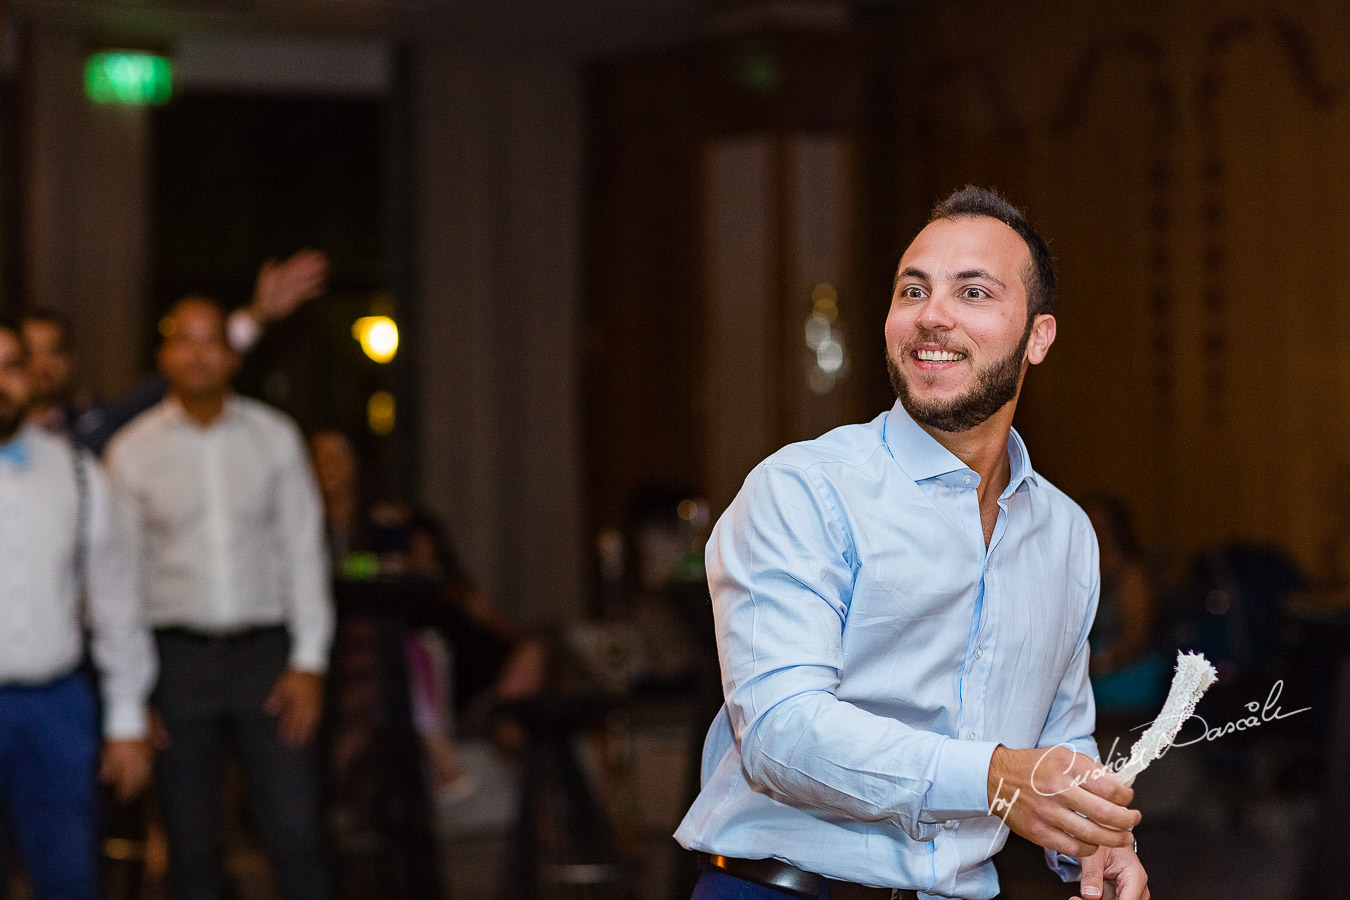 Moment when the groom is throwing the garter photographed as part of an Exclusive Wedding photography at Grand Resort Limassol, captured by Cyprus Wedding Photographer Cristian Dascalu.